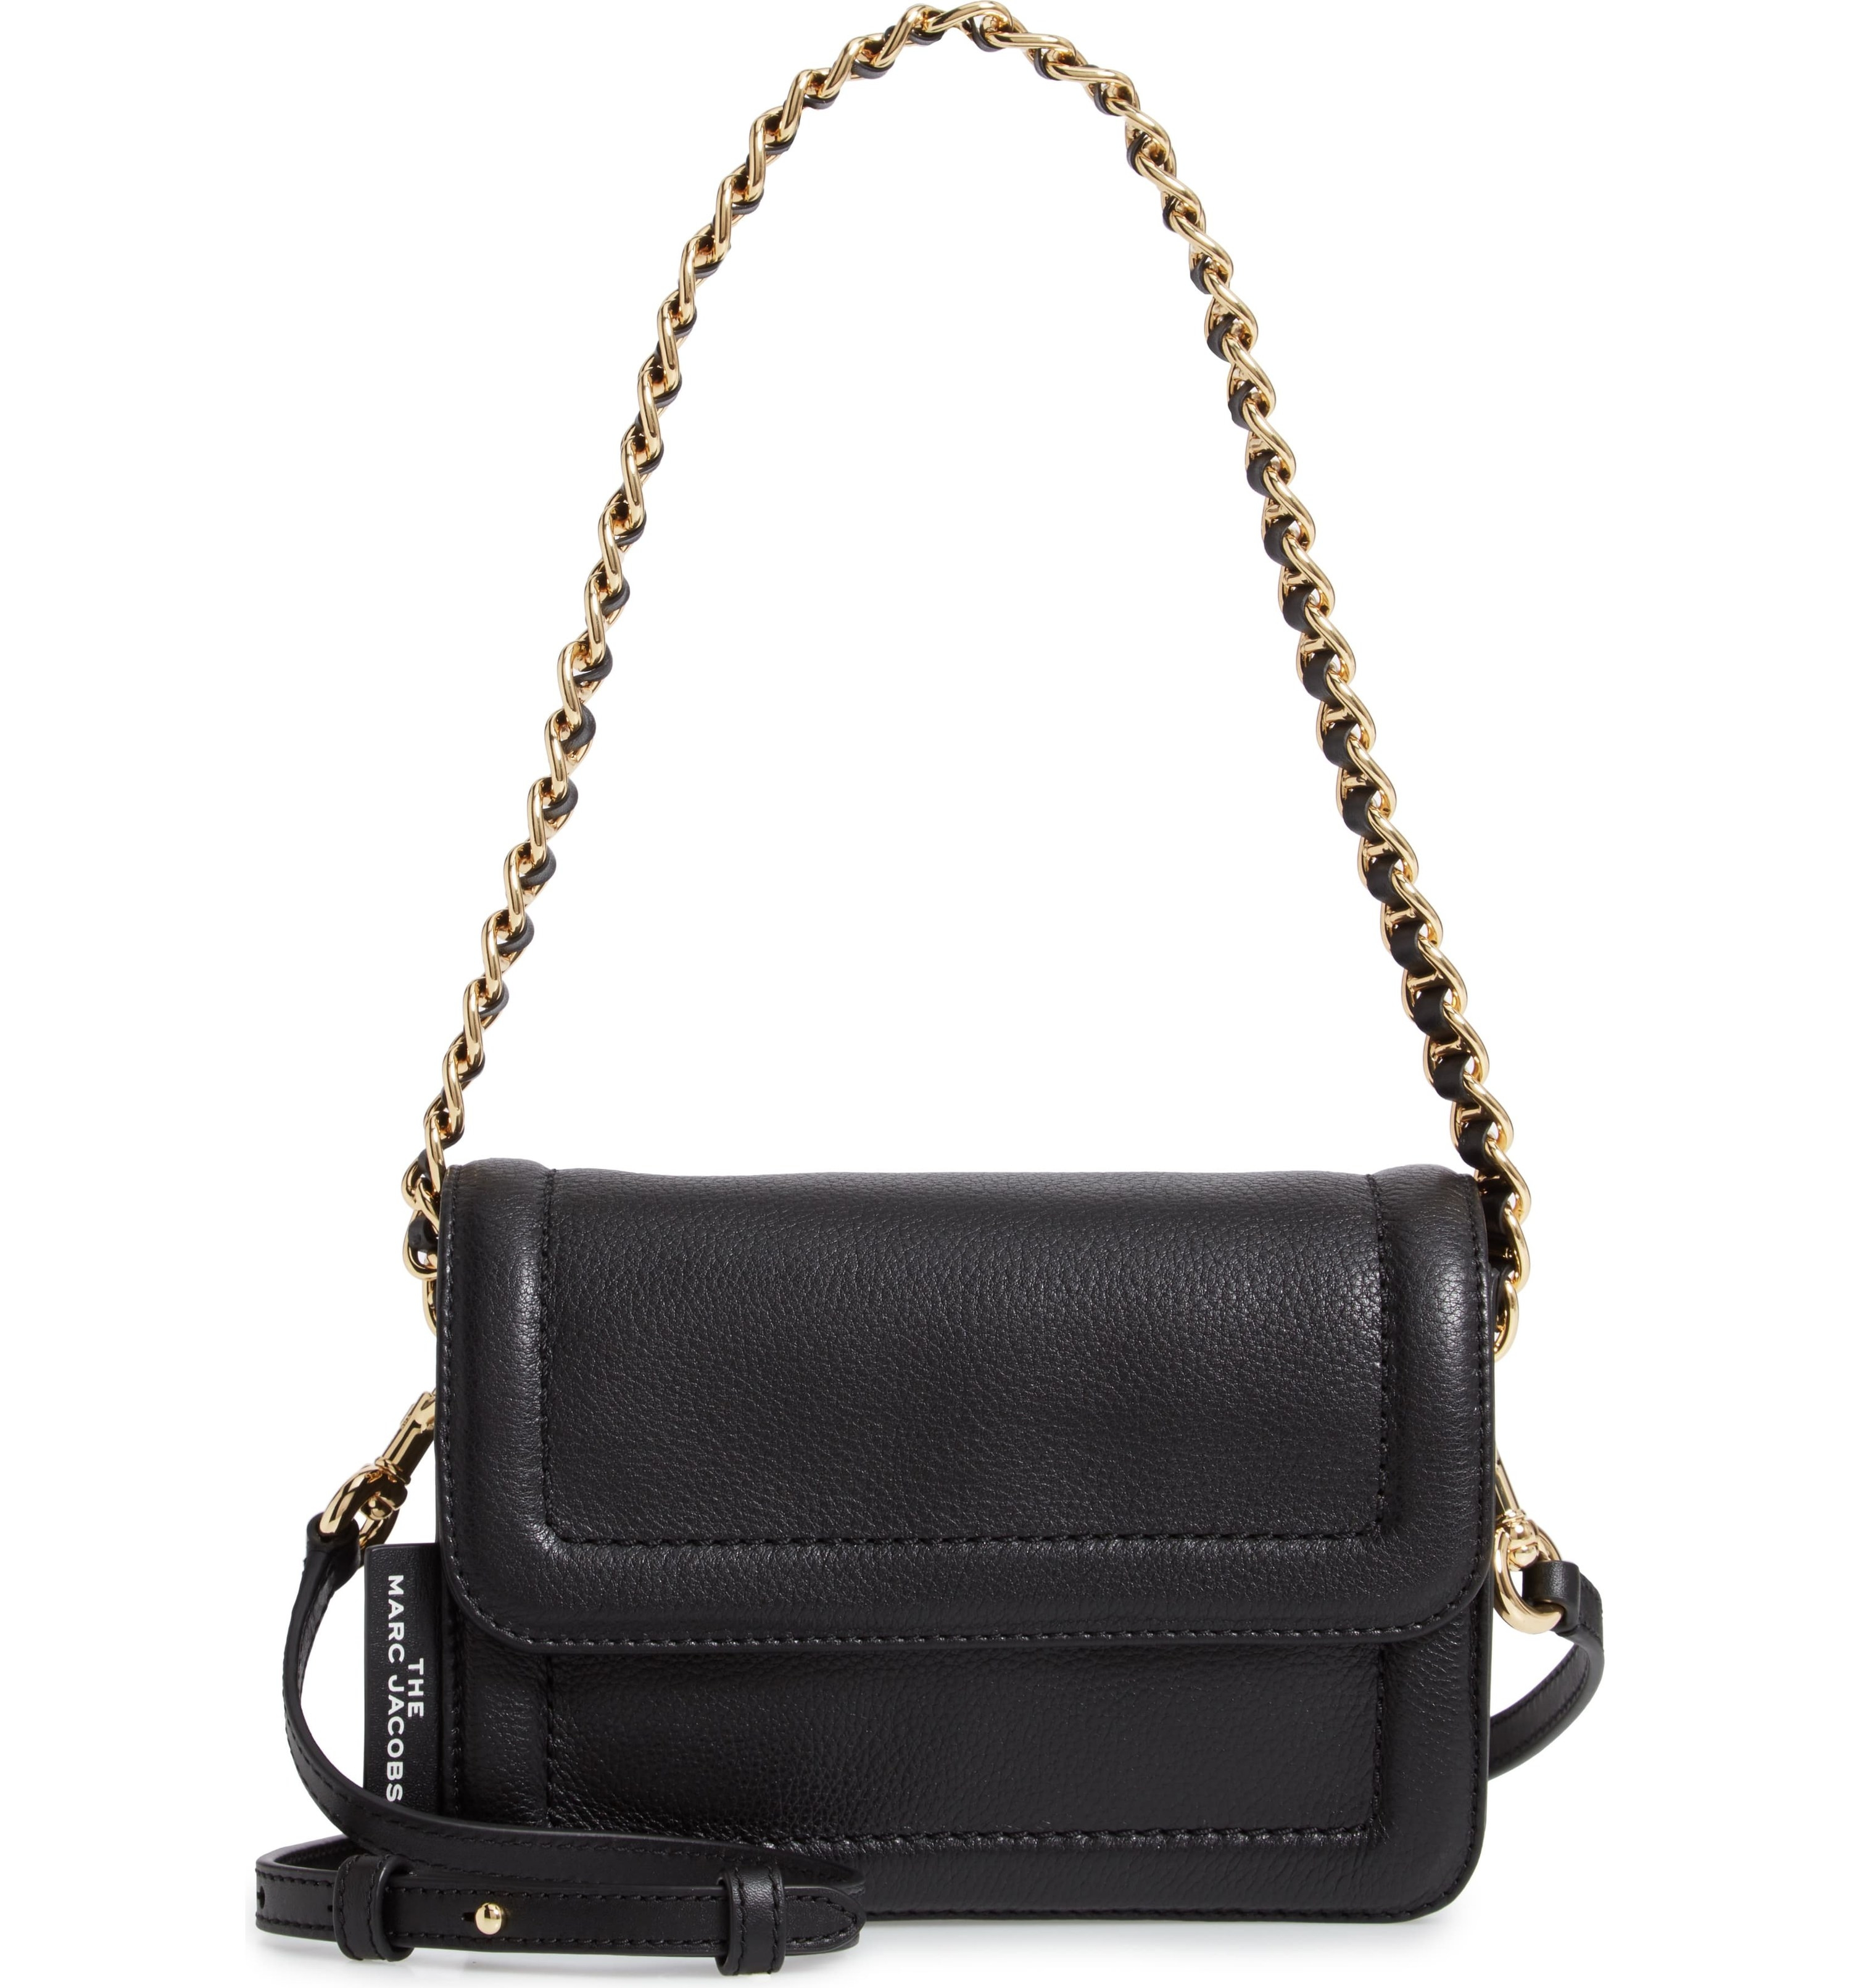 the black purse with a gold chain strap